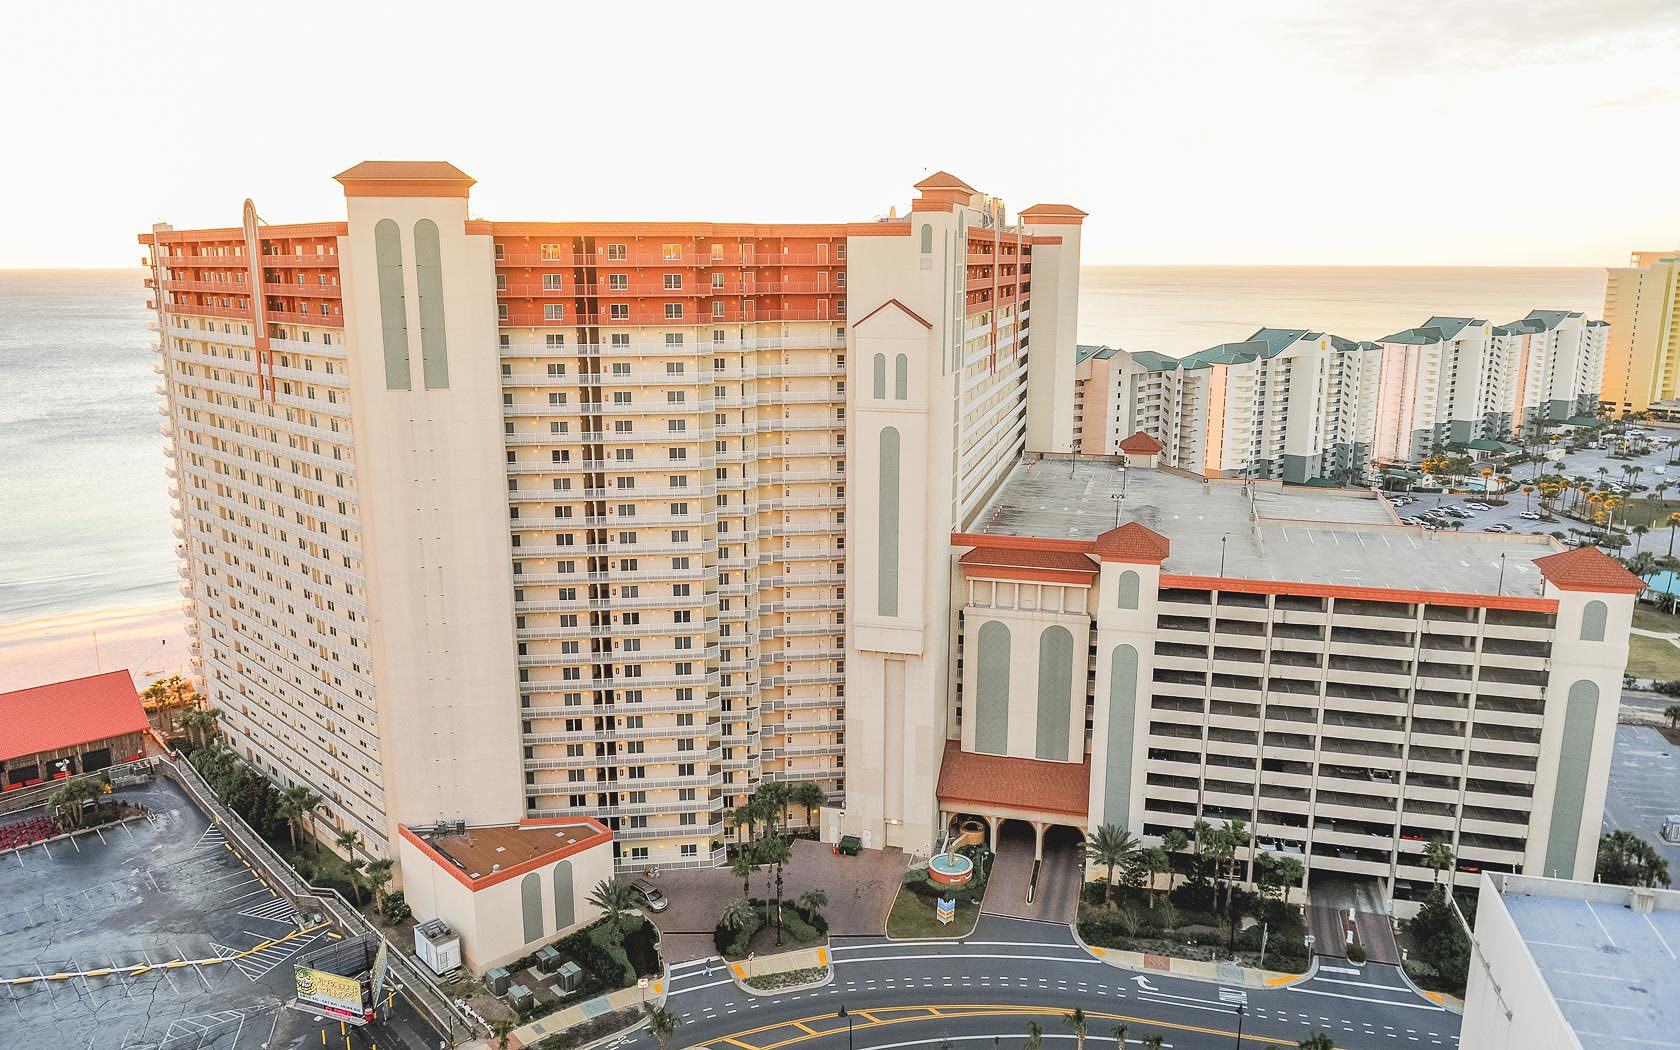 Shores of Panama Panama City Beach FL is directly on the Gulf of Mexico